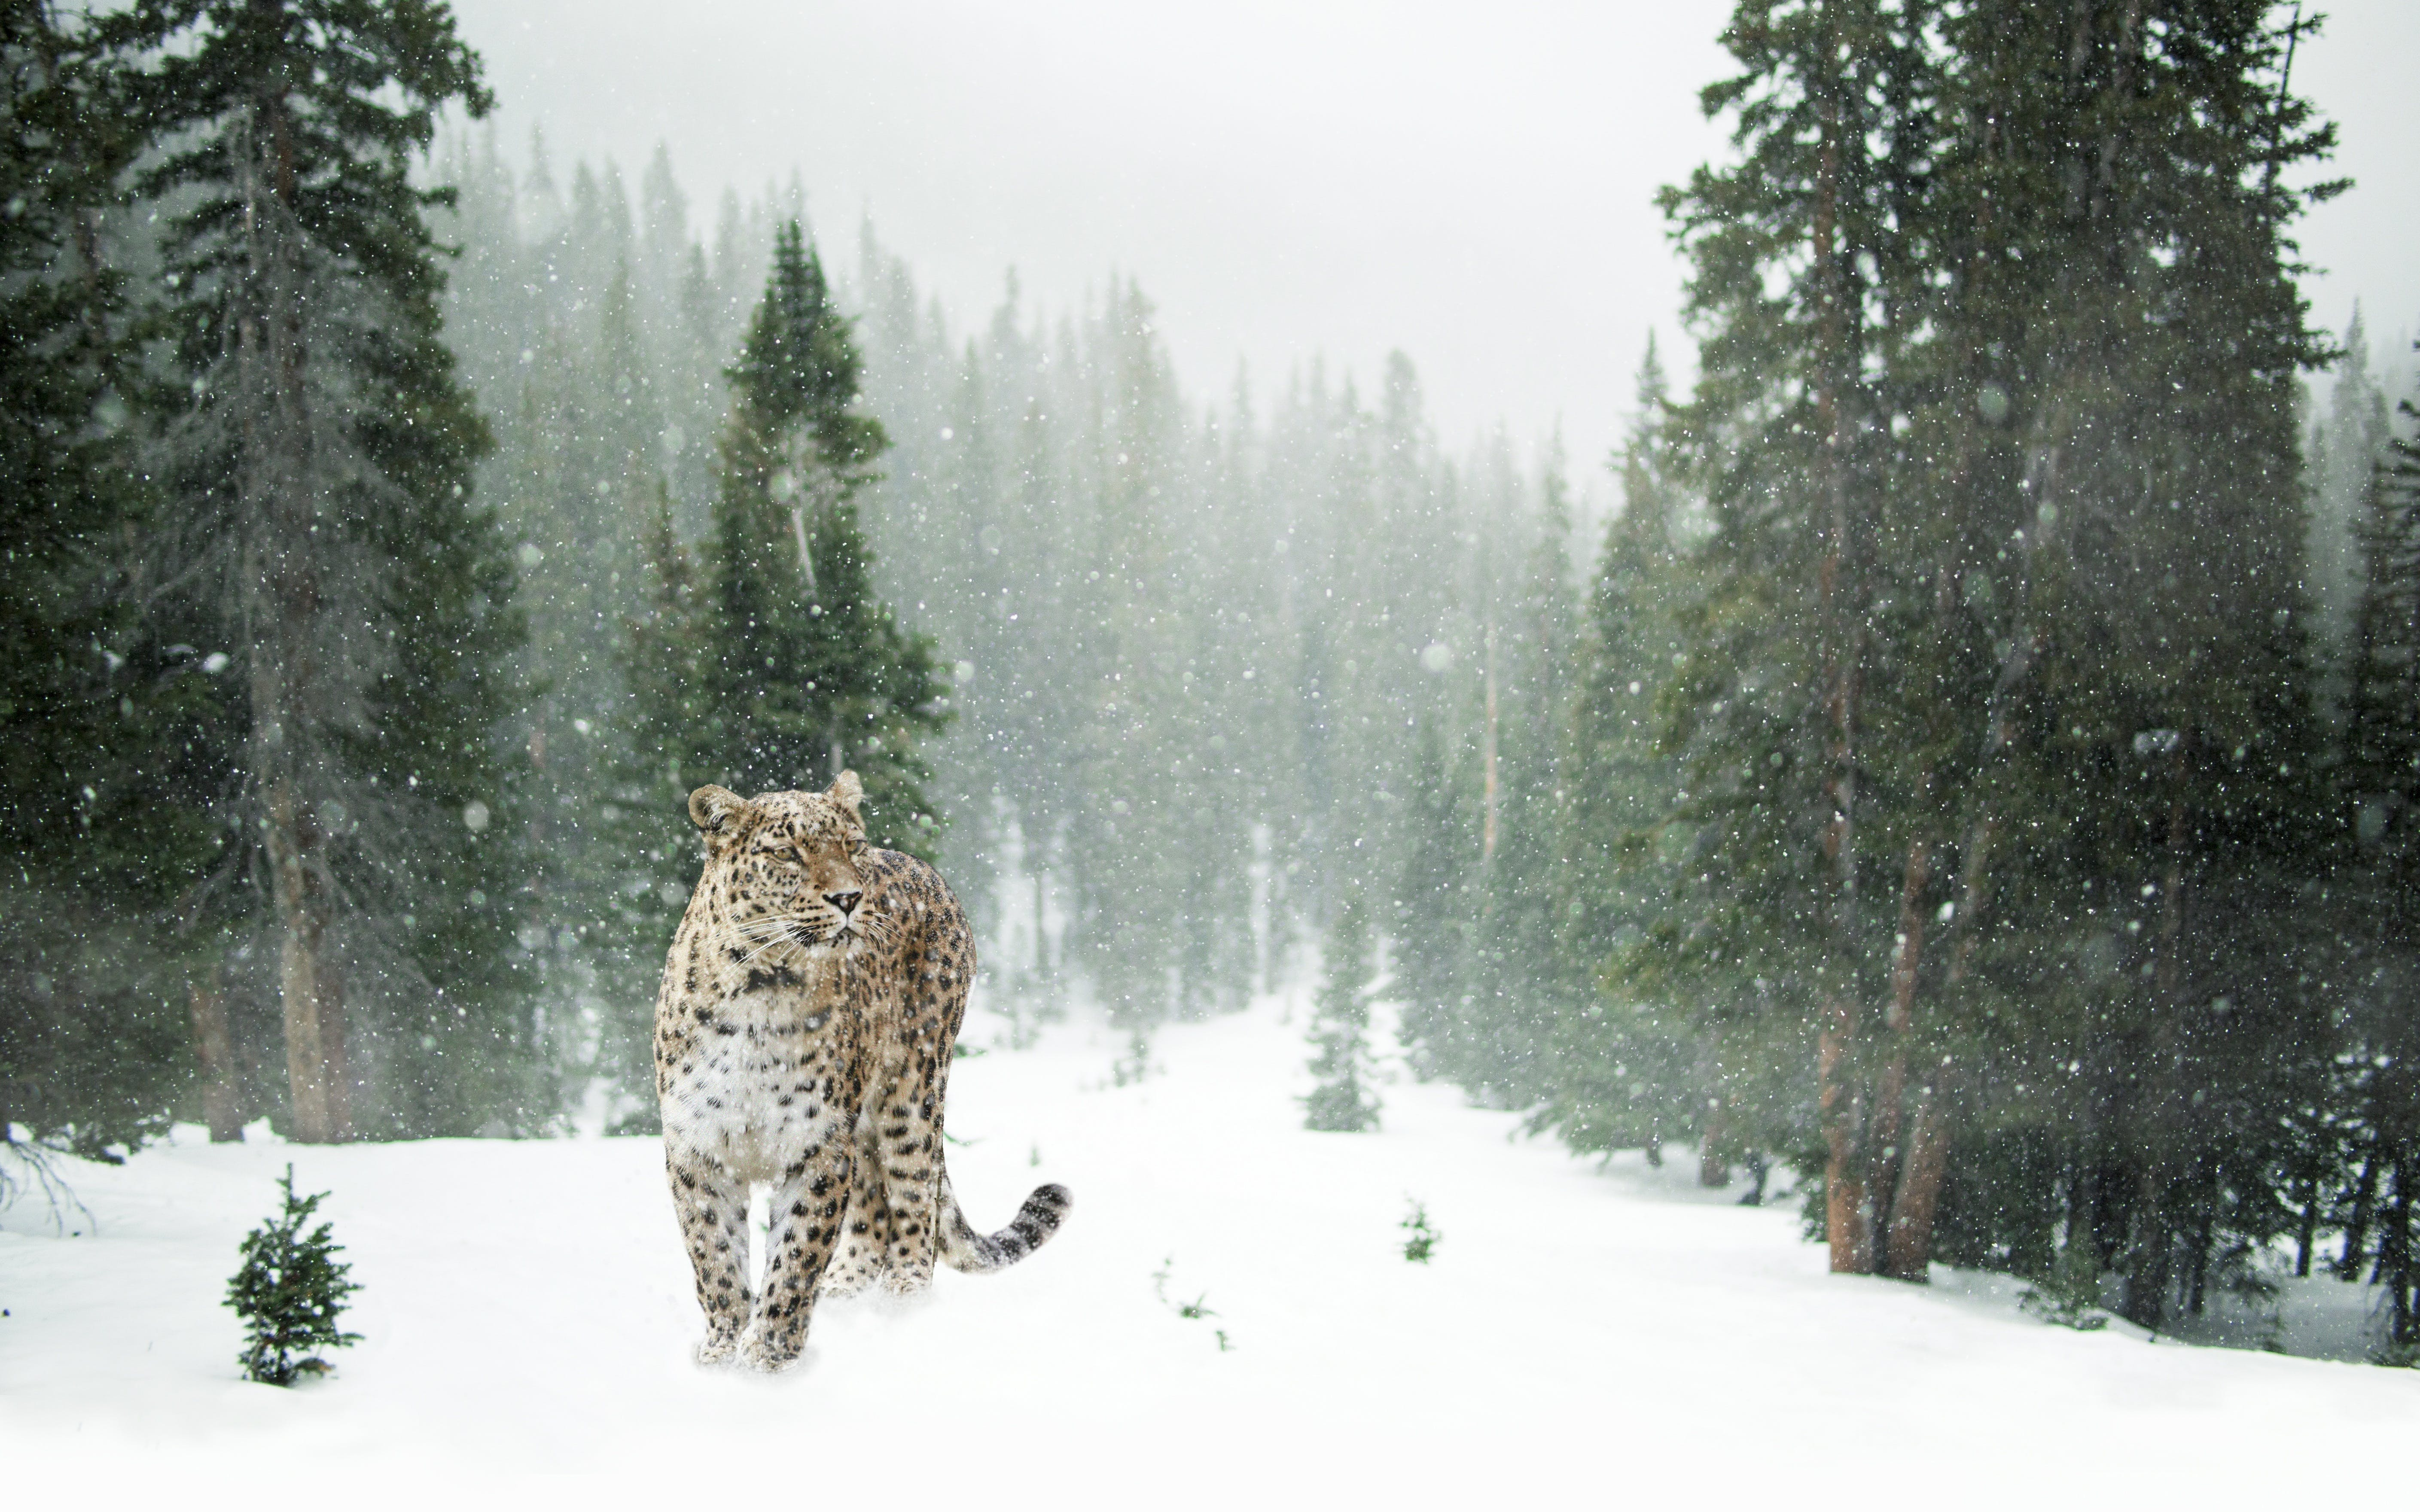 Brown and Black Leopard on Snow Covered Forest